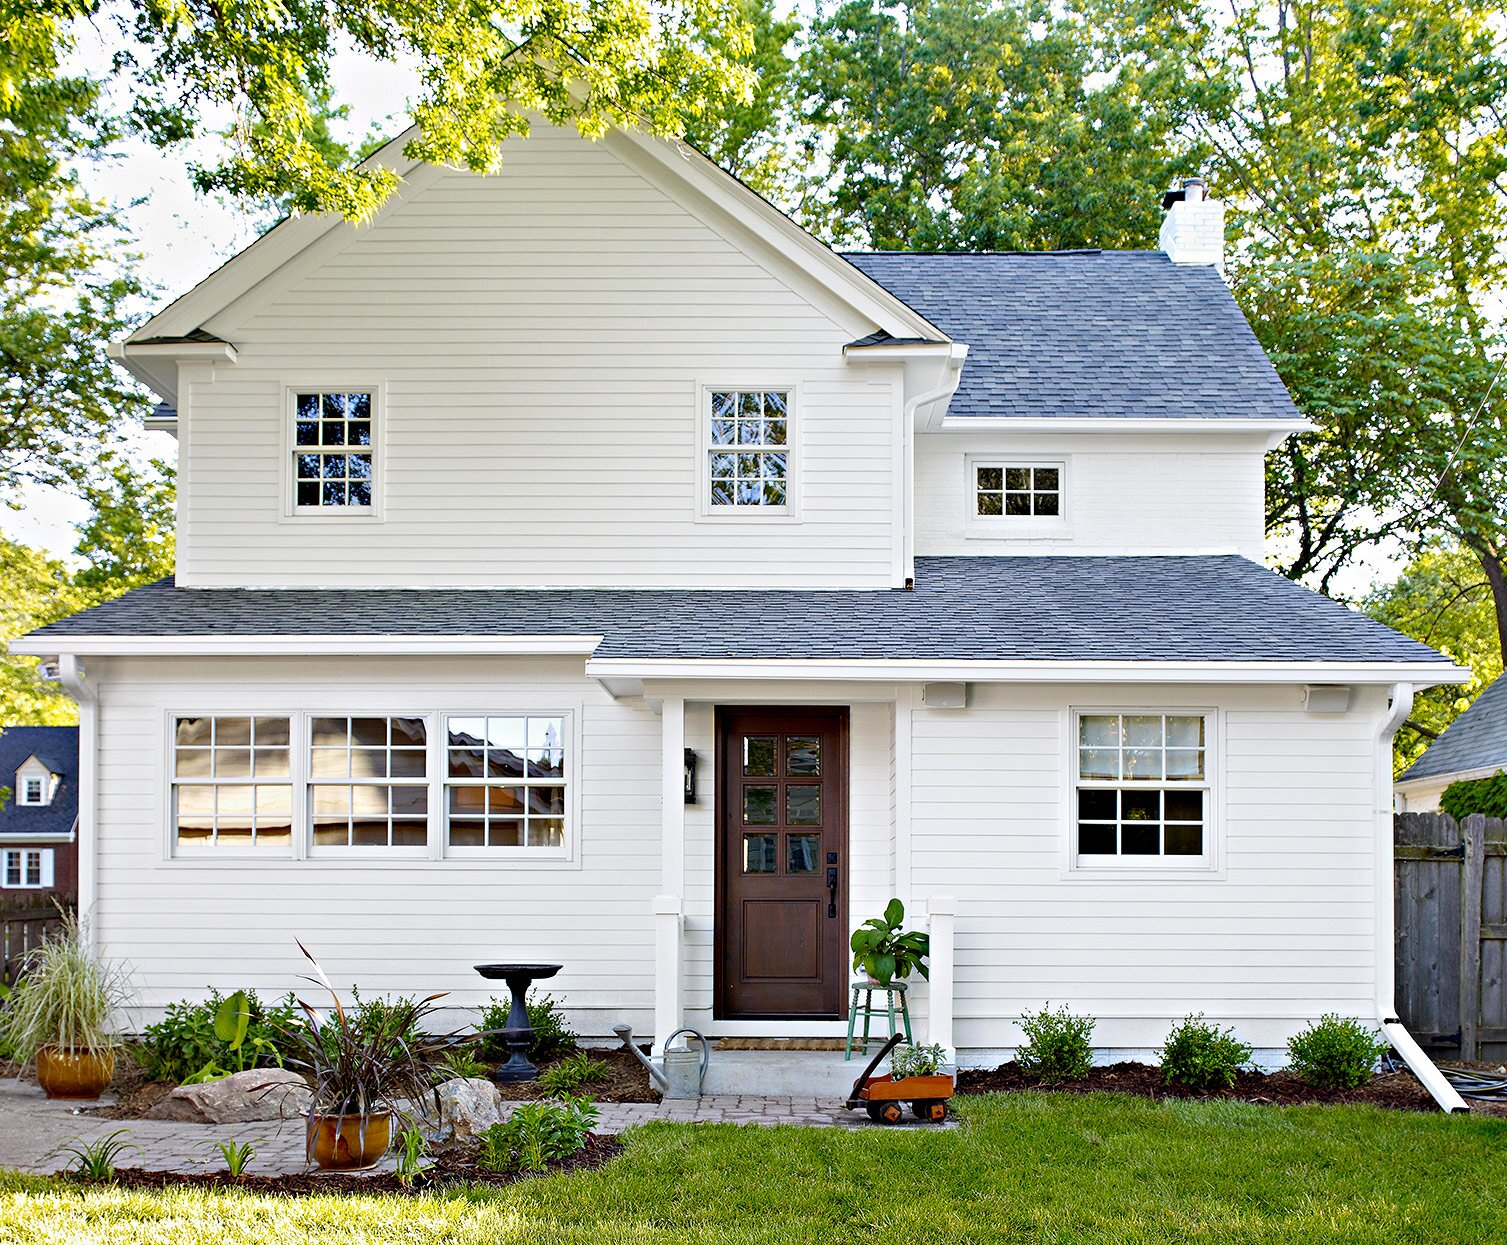 Choose The Best Material For Your Home S Exterior With Our Guide To Siding Options Better Homes Gardens